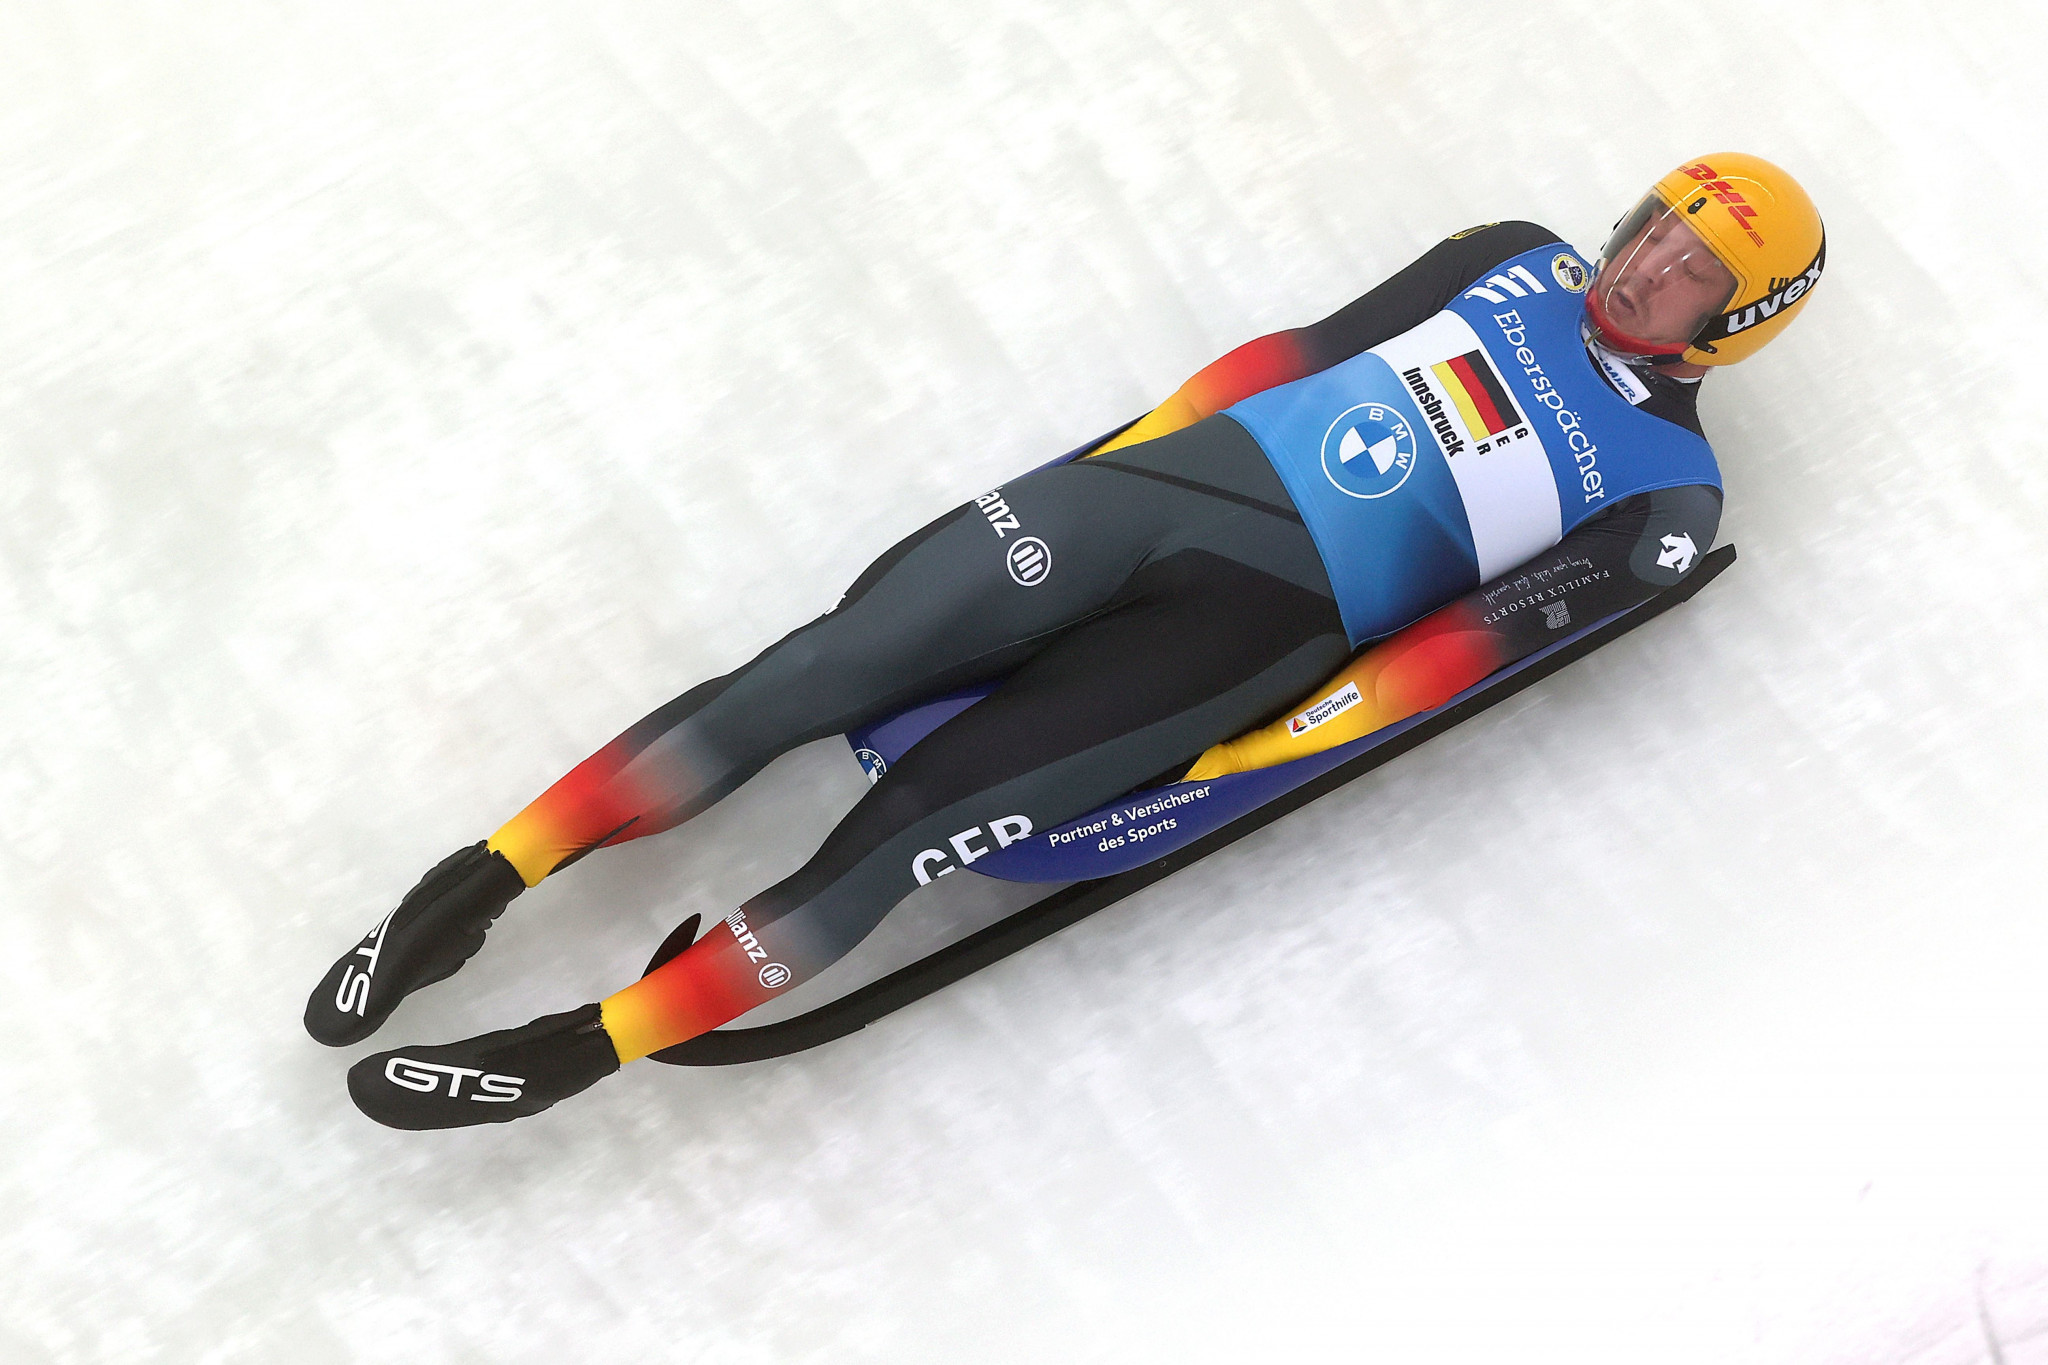 Loch aims to maintain 100 per cent winning streak at Luge World Cup in Winterberg